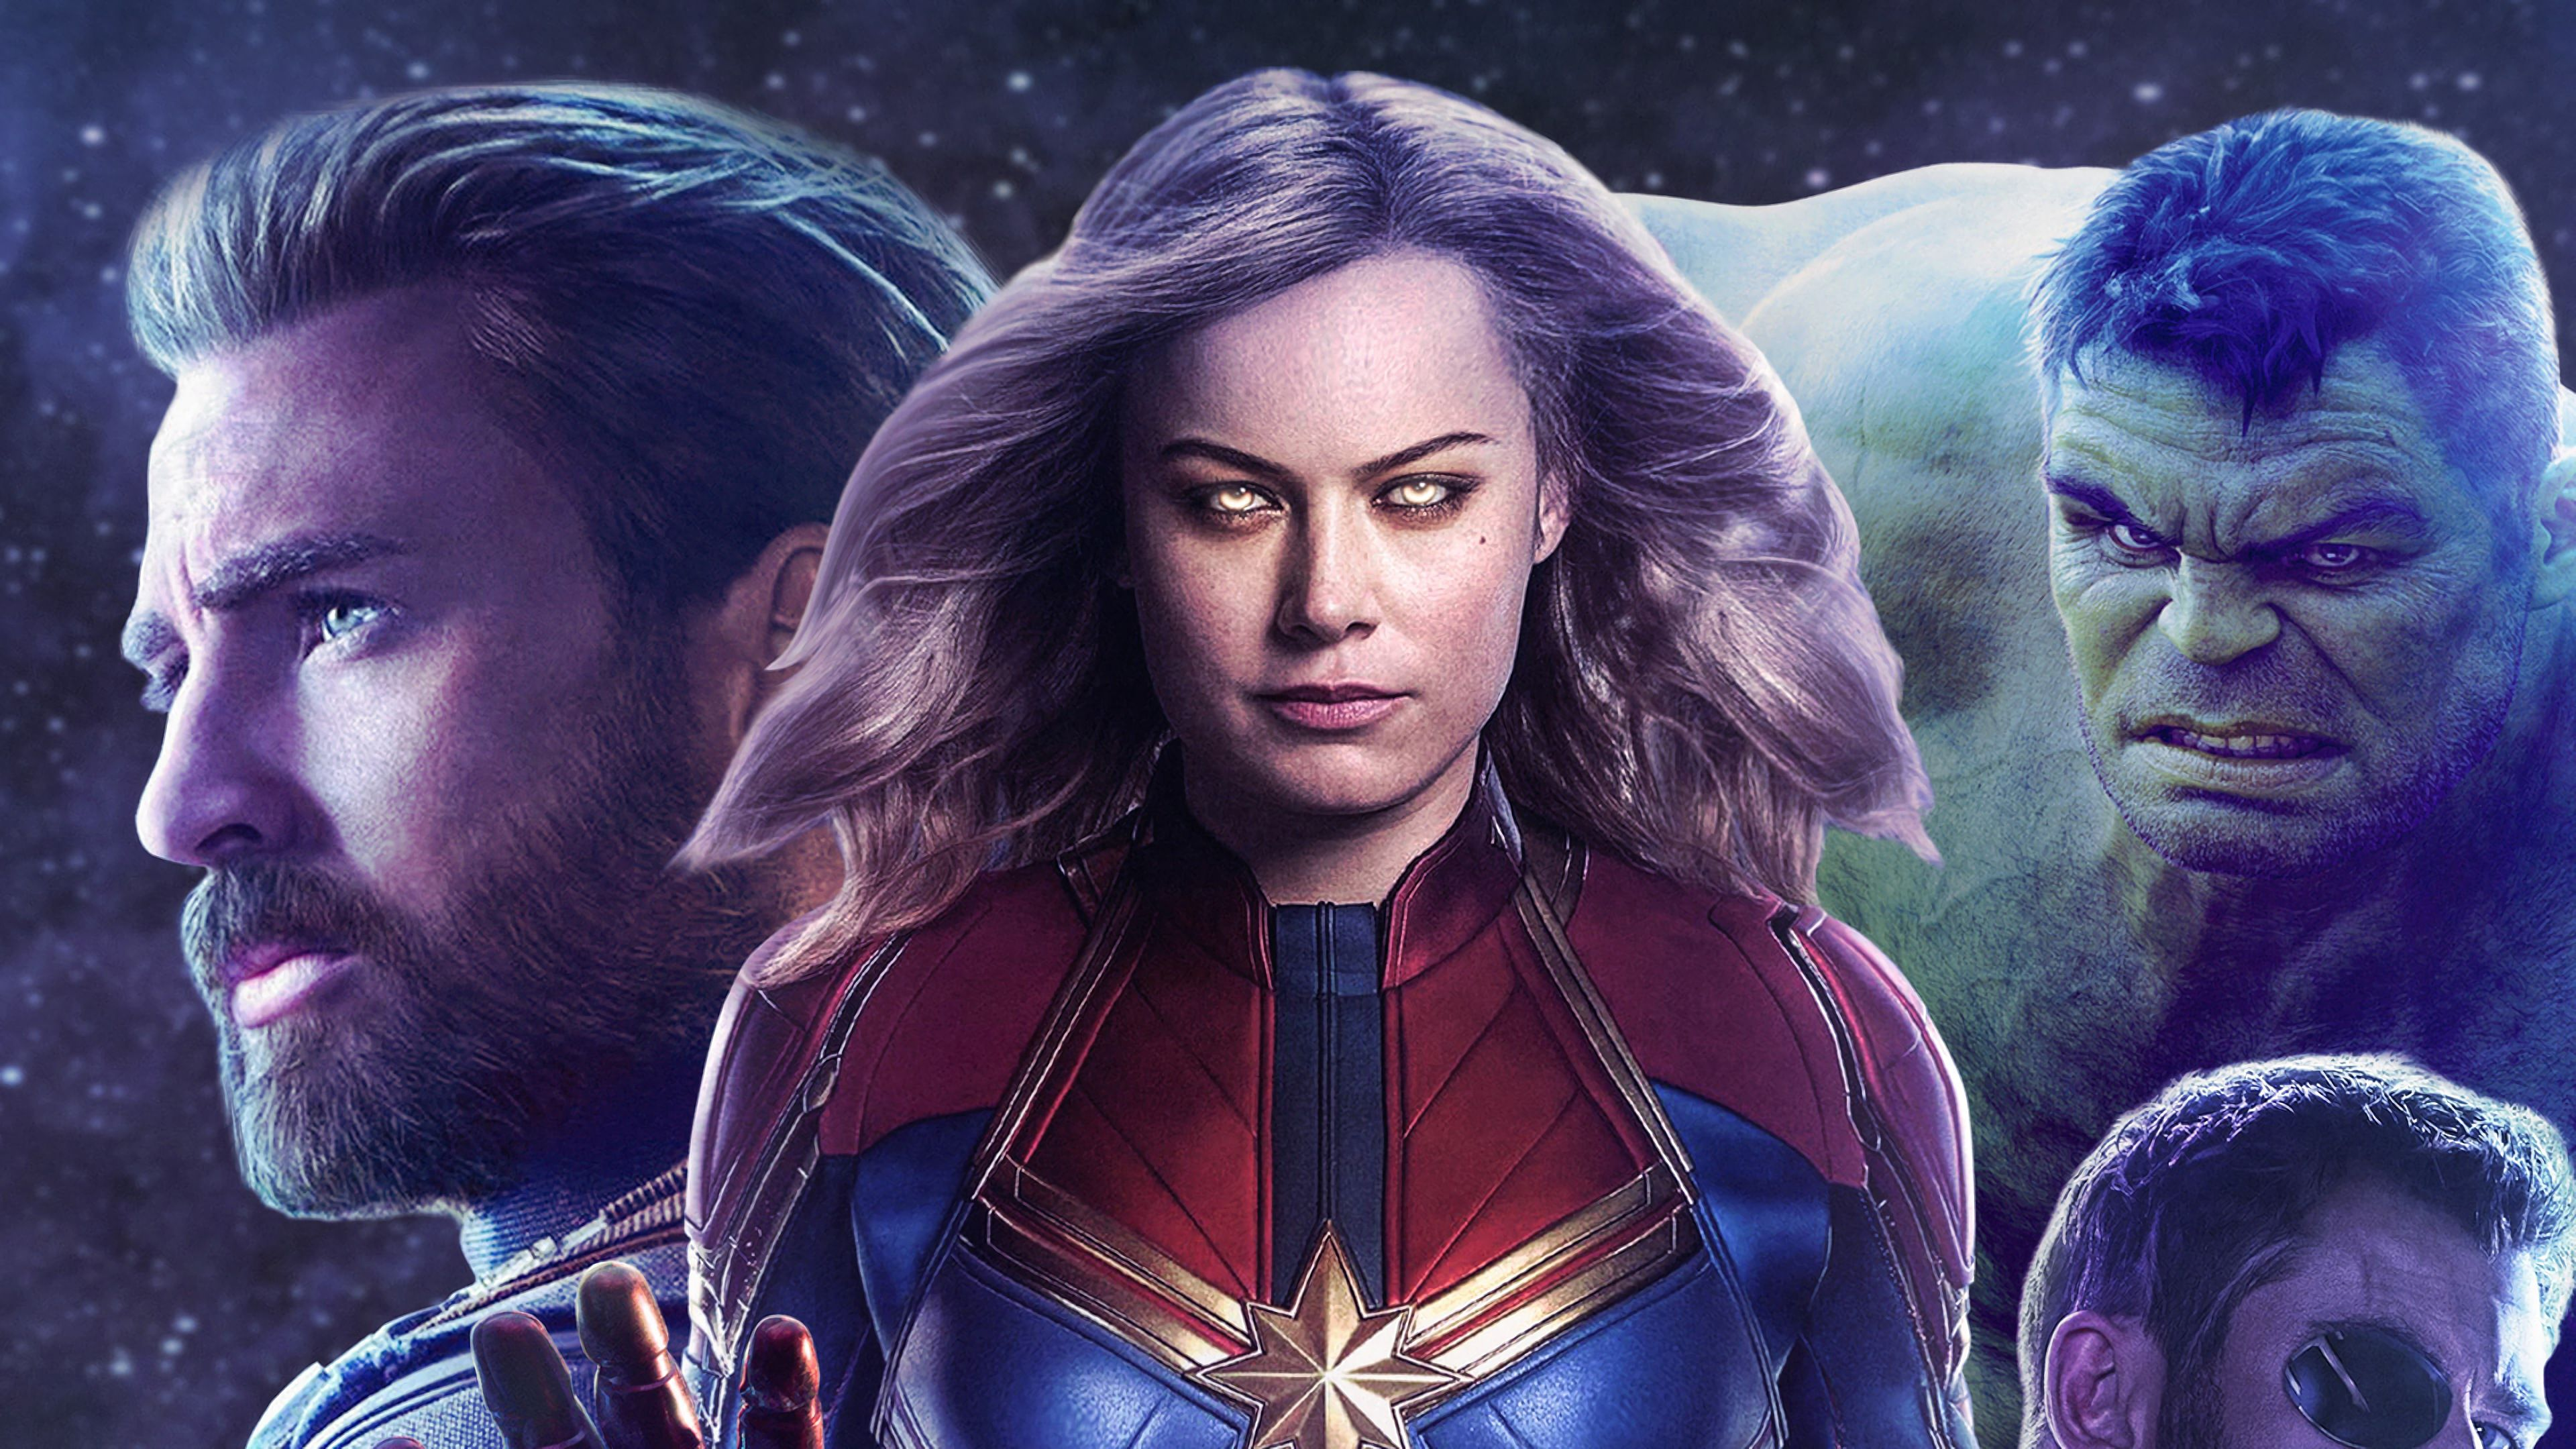 Captain Marvel Movie 2019 Hulk Captain America 4k Wallpaper The Hulk Captain Marvel Movie 2019 Captain Marvel Carol Dan Avengers Marvel Thor Marvel Movies